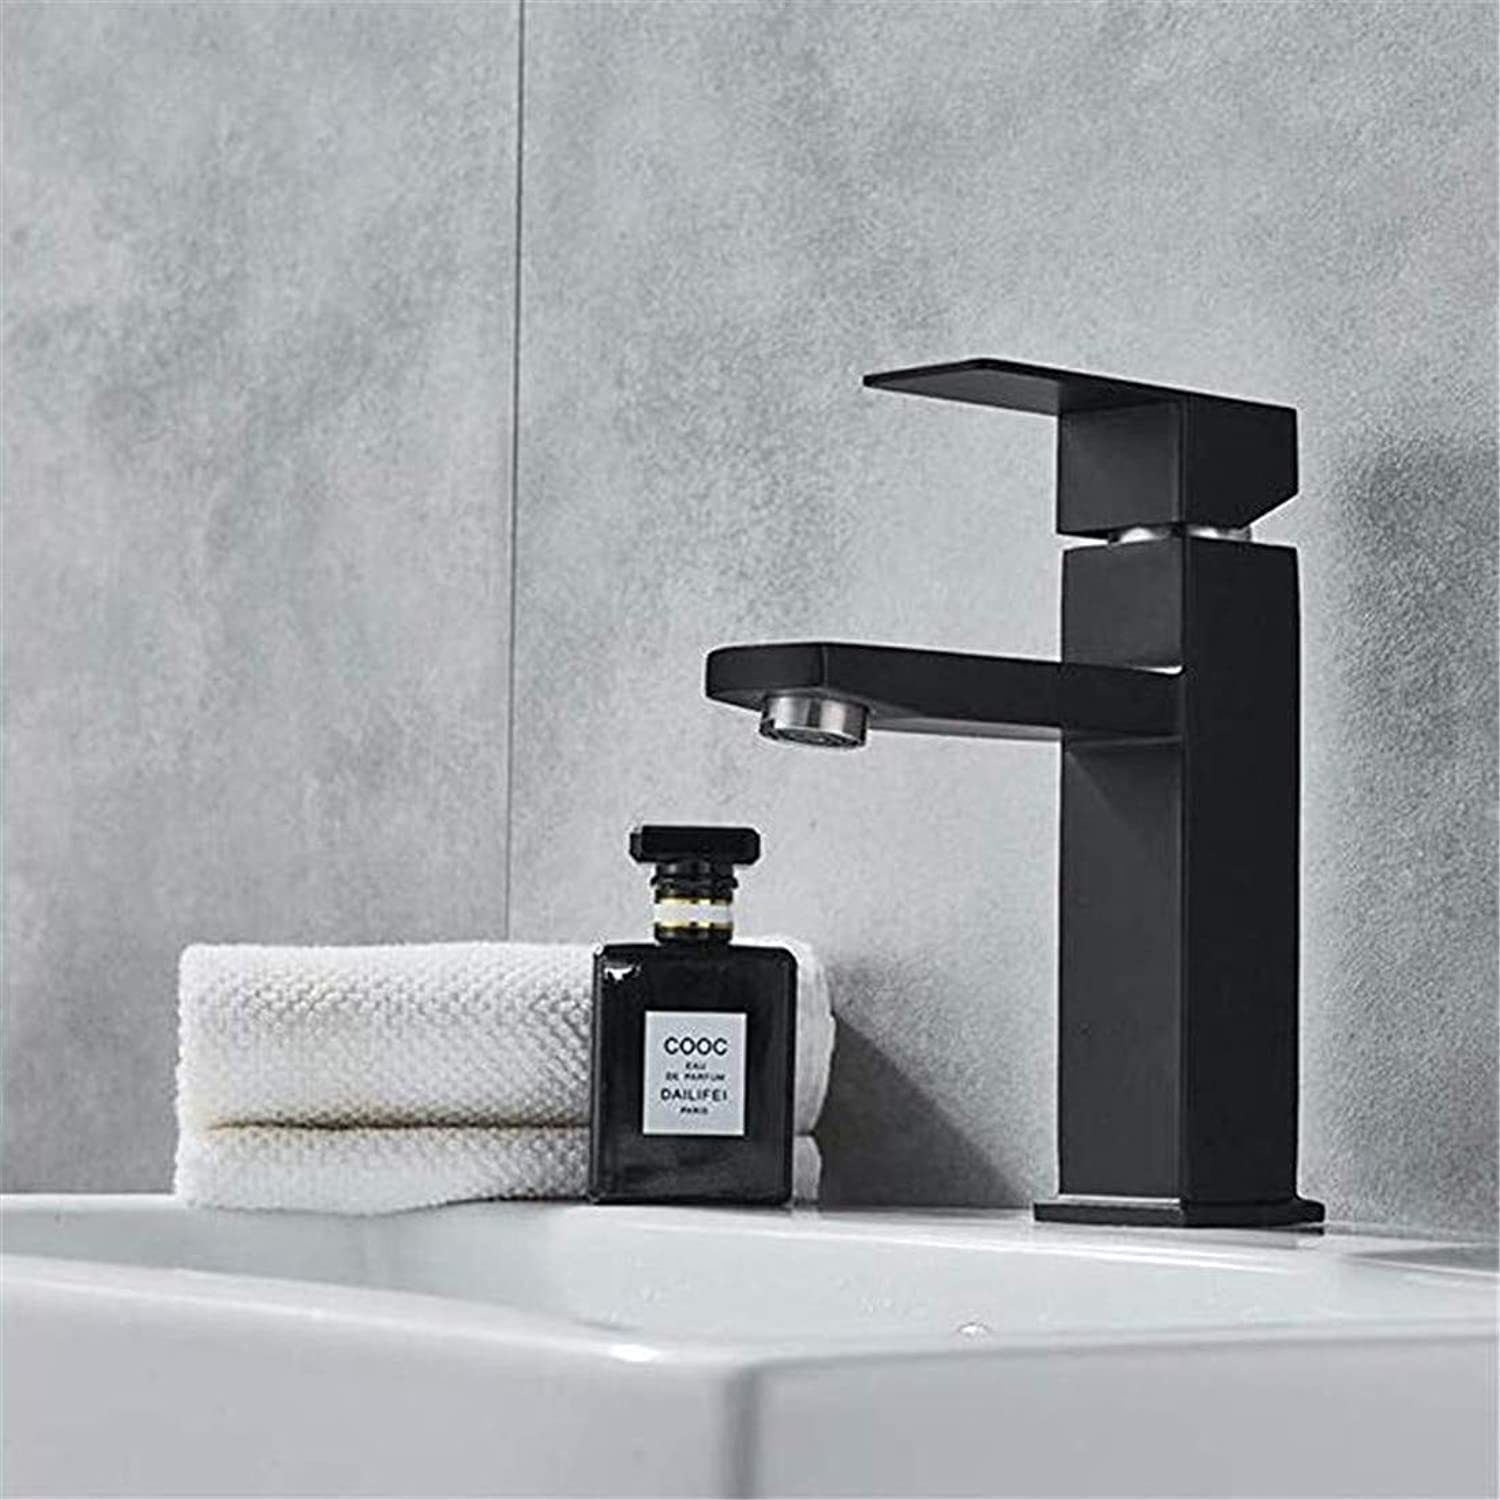 Luxury Modern Hot and Cold Faucet Vintage Platingfaucet Lavatory Sink Basin Mixer Taps Deck Mounted Single Handle Single Hole Cold and Hot Mixer